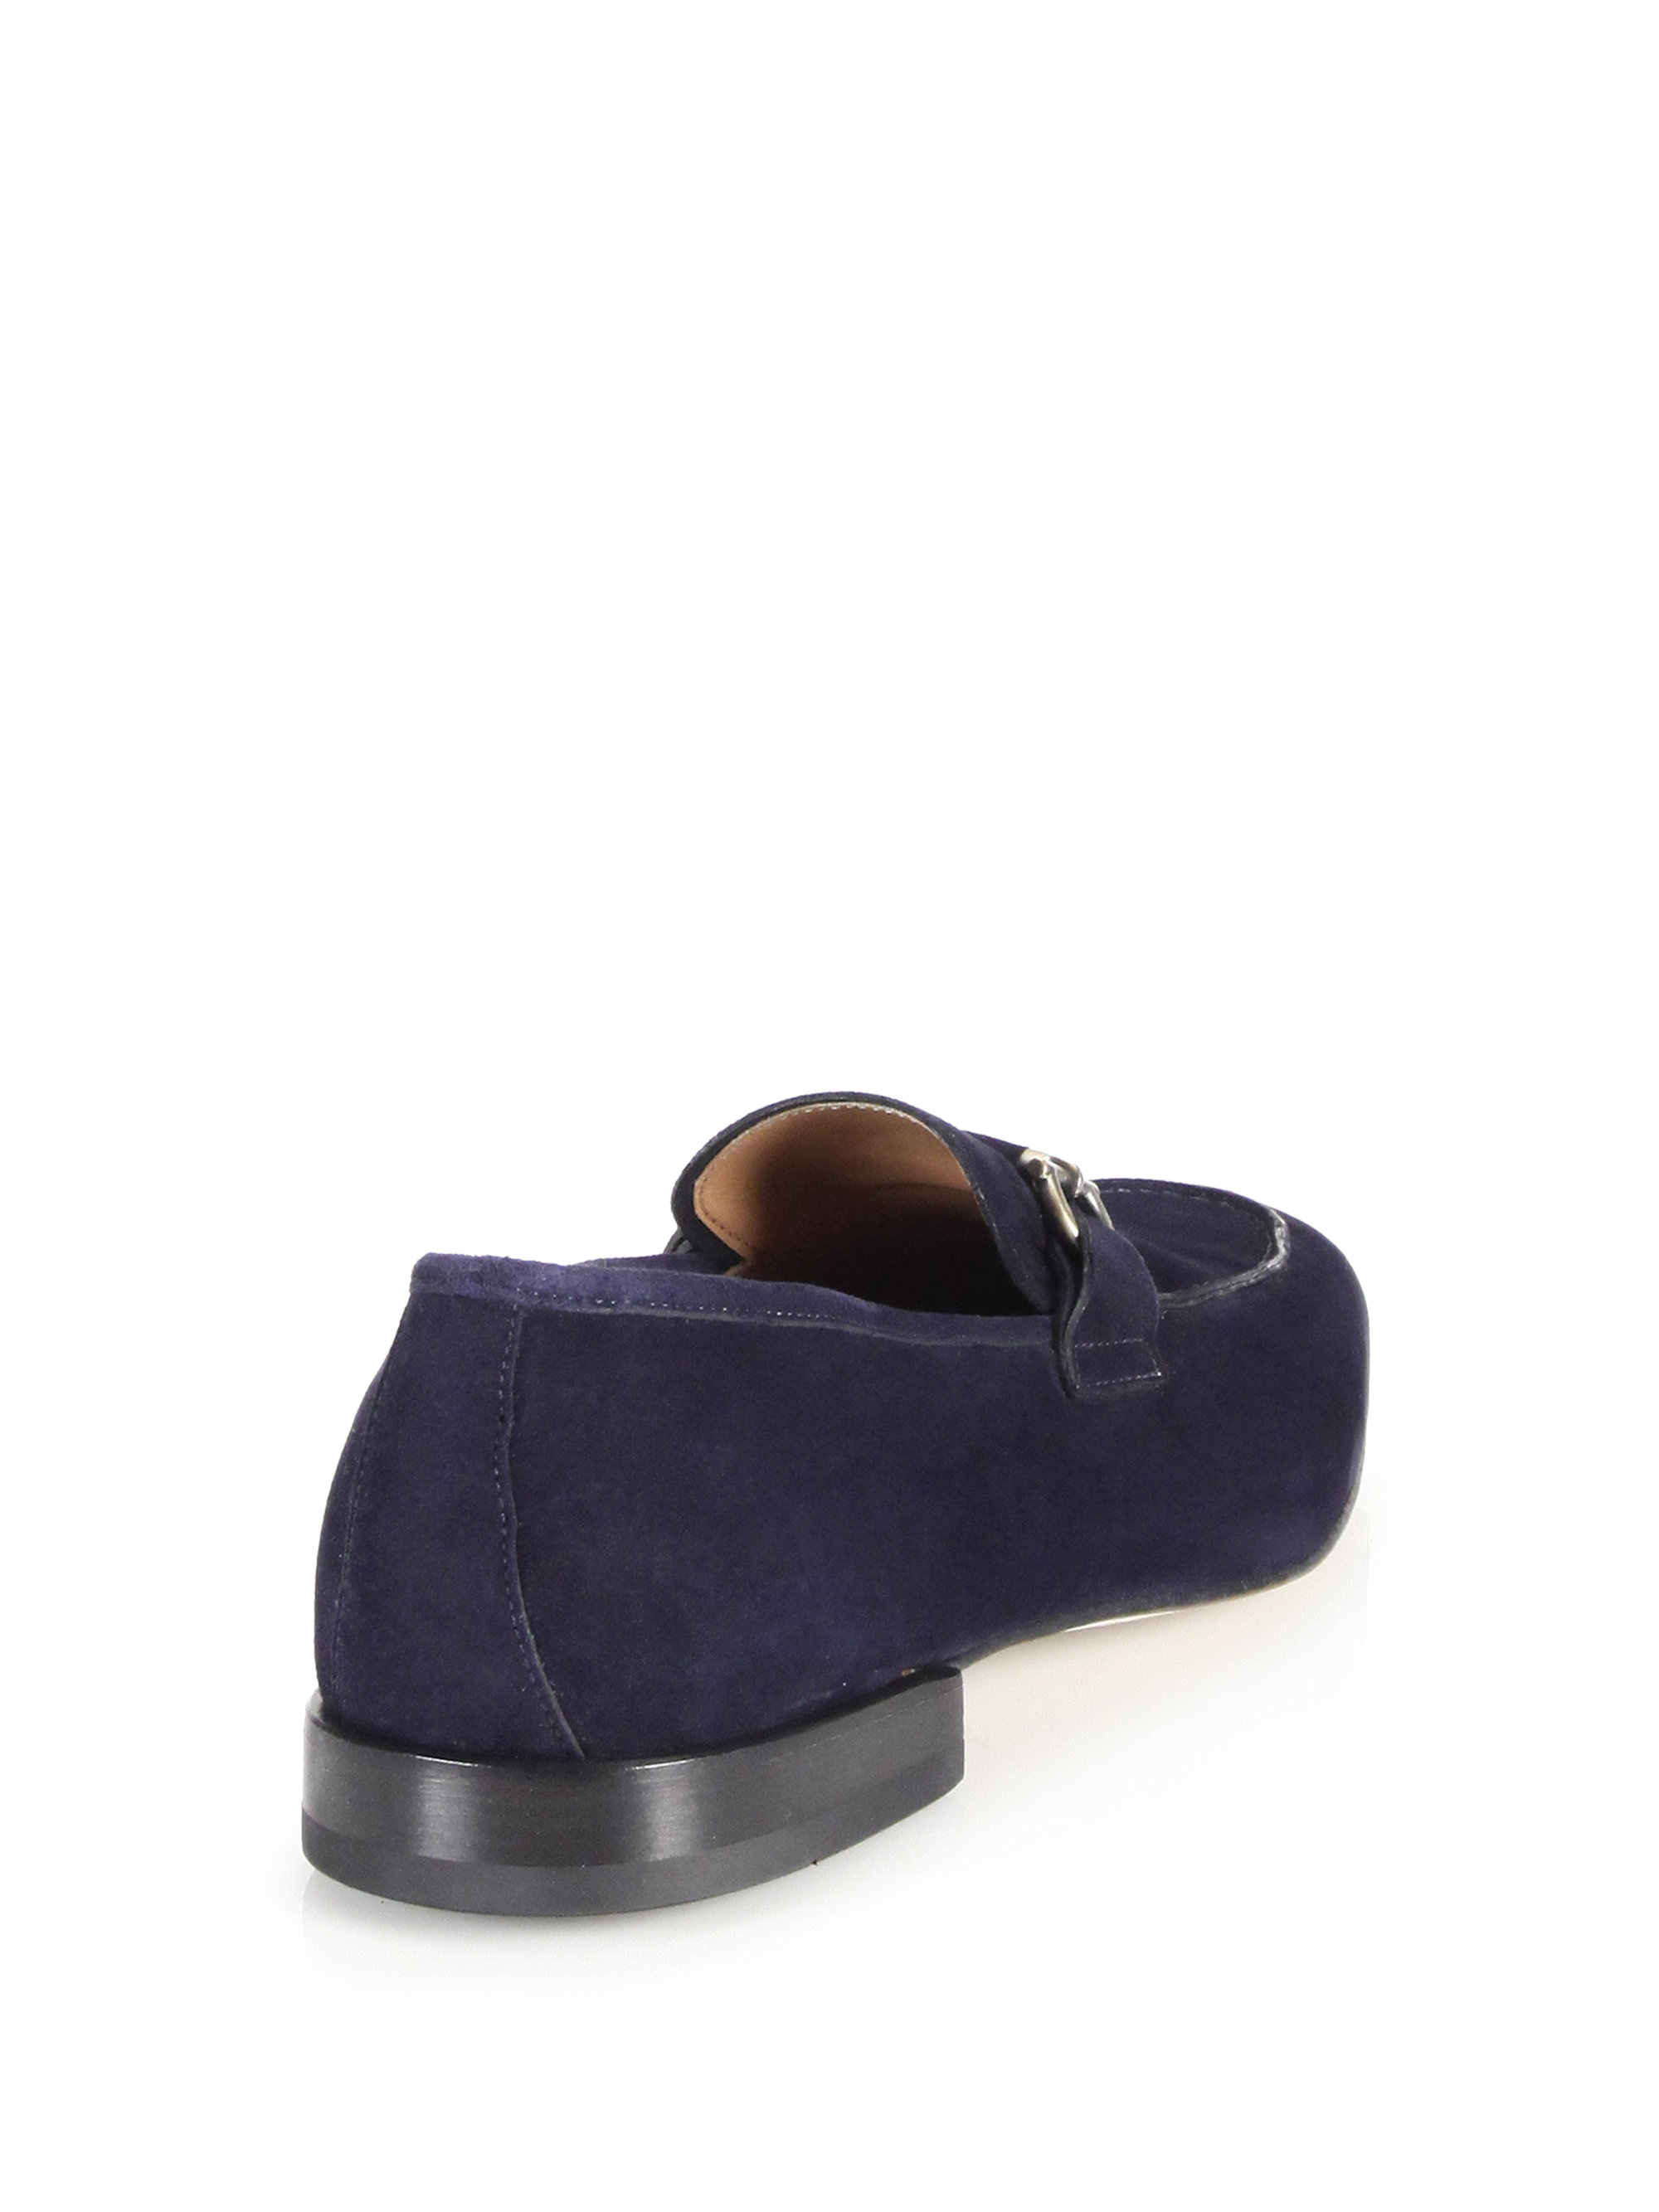 Ferragamo Horsebit Suede Loafers in Blue - Lyst